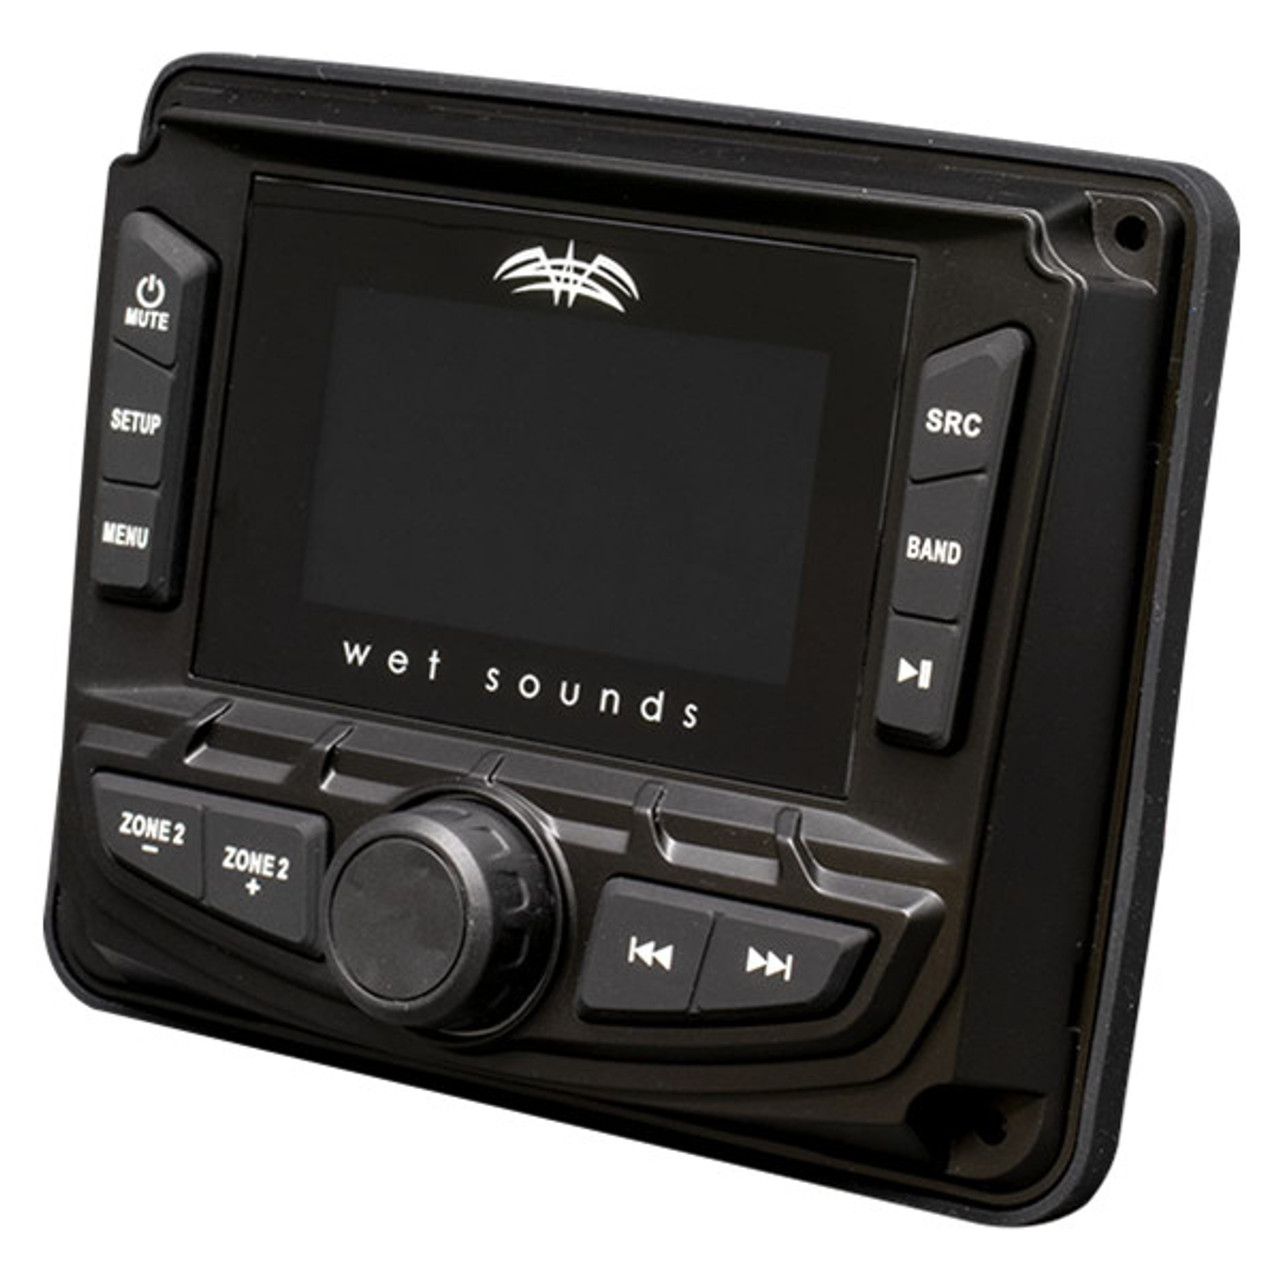 Wet Sounds AM/FM/Weather Band Tuner with RBDS